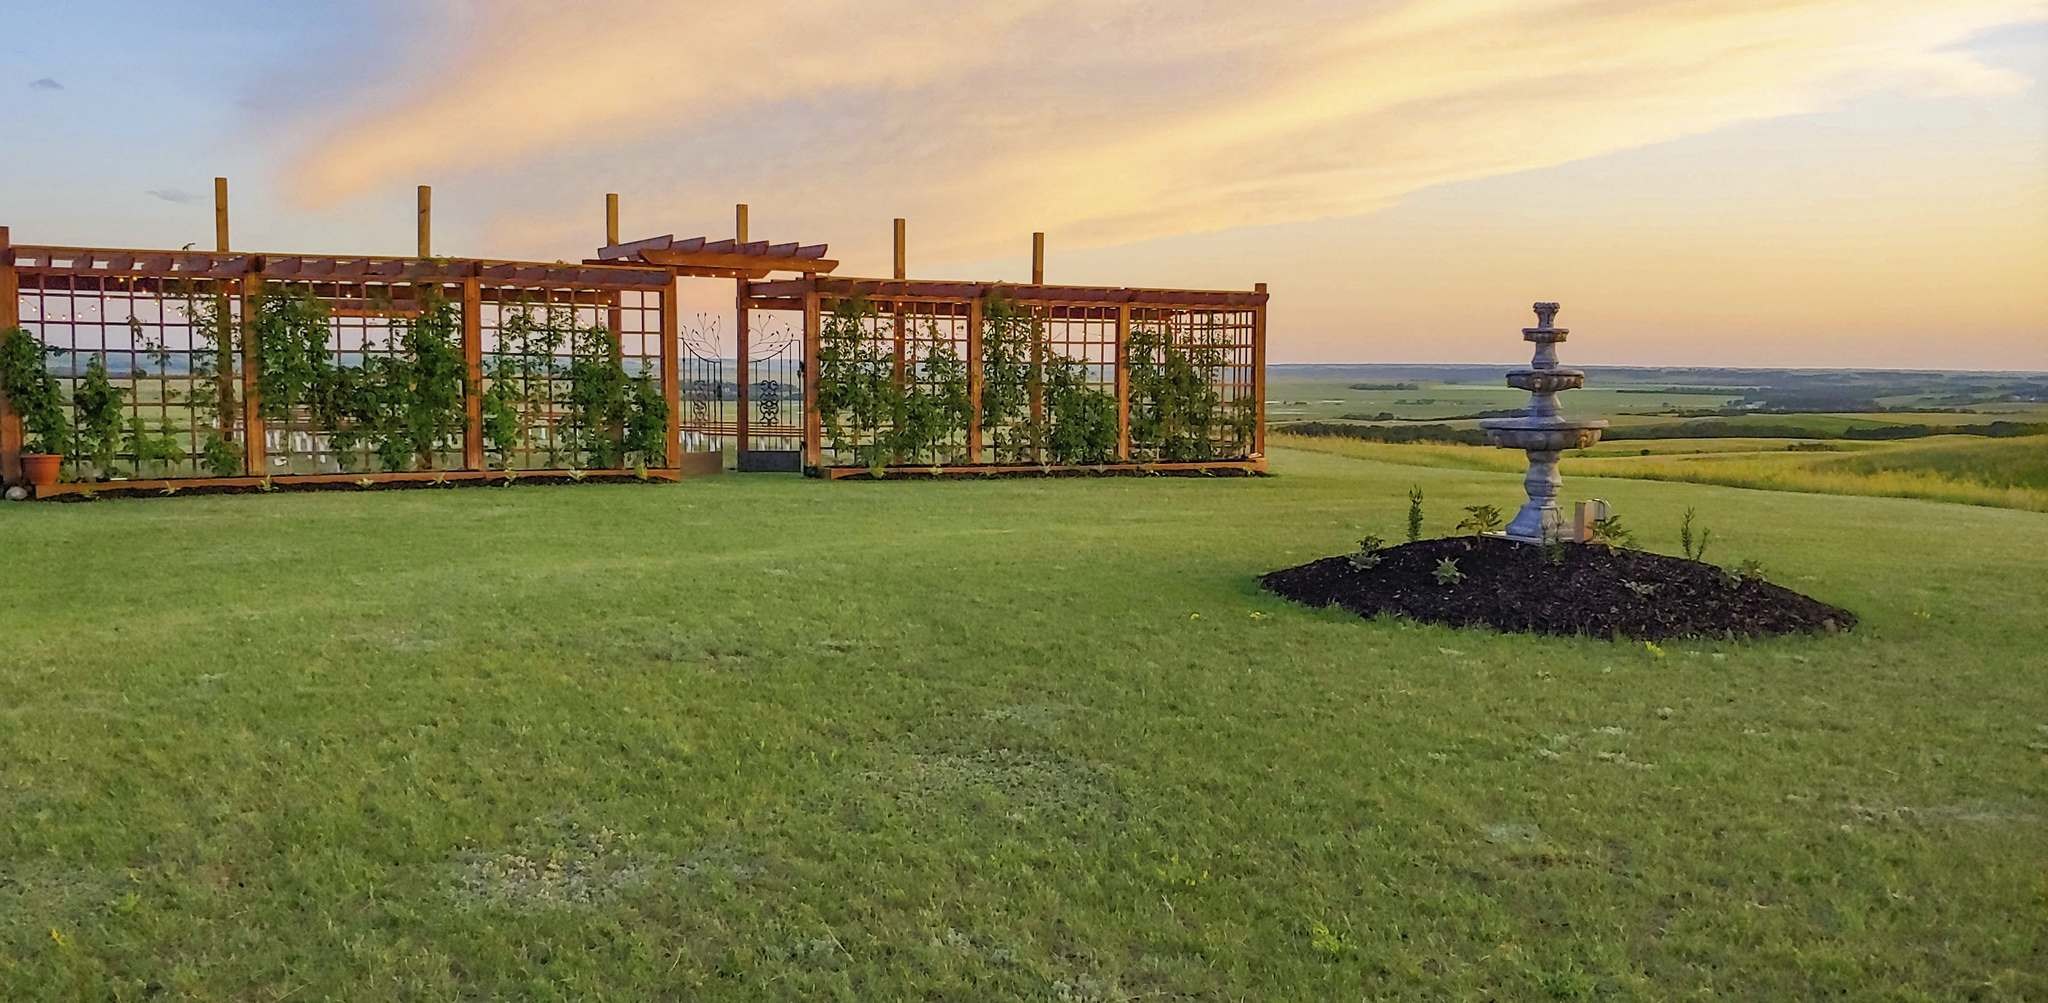 Valley Gate wedding and event venue is located 30 minutes northwest of Brandon between Alexander and Rivers. The site offers stunning views of the Assiniboine River Valley. (Submitted)</p></p>